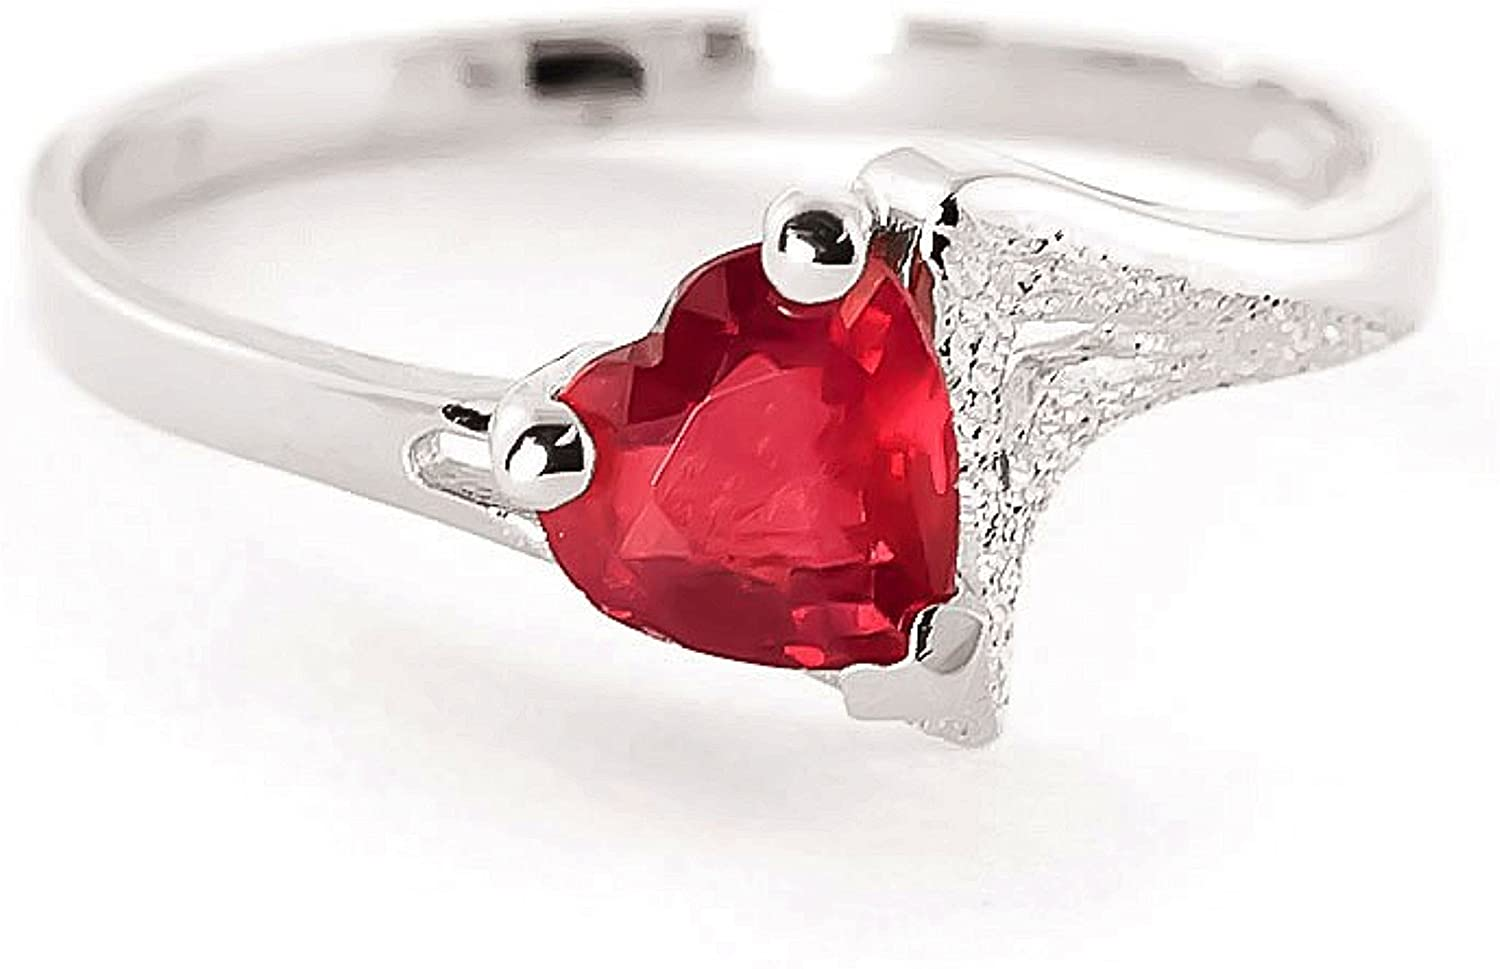 Galaxy Gold 1 ct 14k Solid White Gold Solitaire Heart-Shaped Ruby Ring - Size 7.5